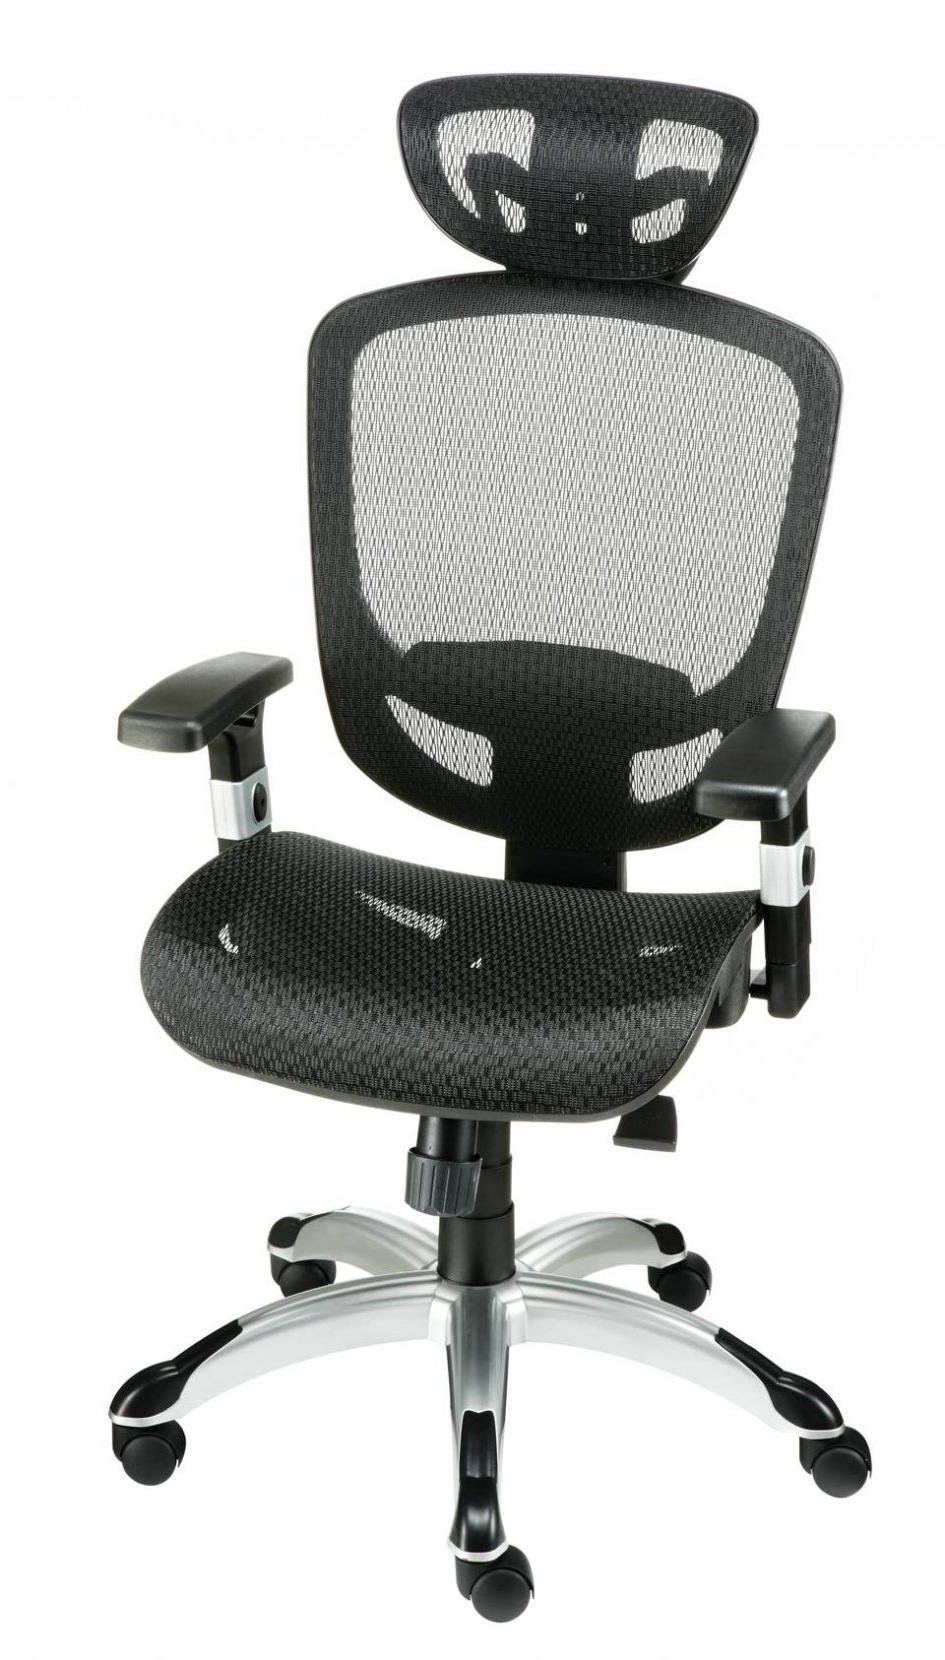 Comfortable Desk Chair Massage Office Chair Buy Office Chair With Most Current Executive Office Chairs With Massage/heat (View 18 of 20)